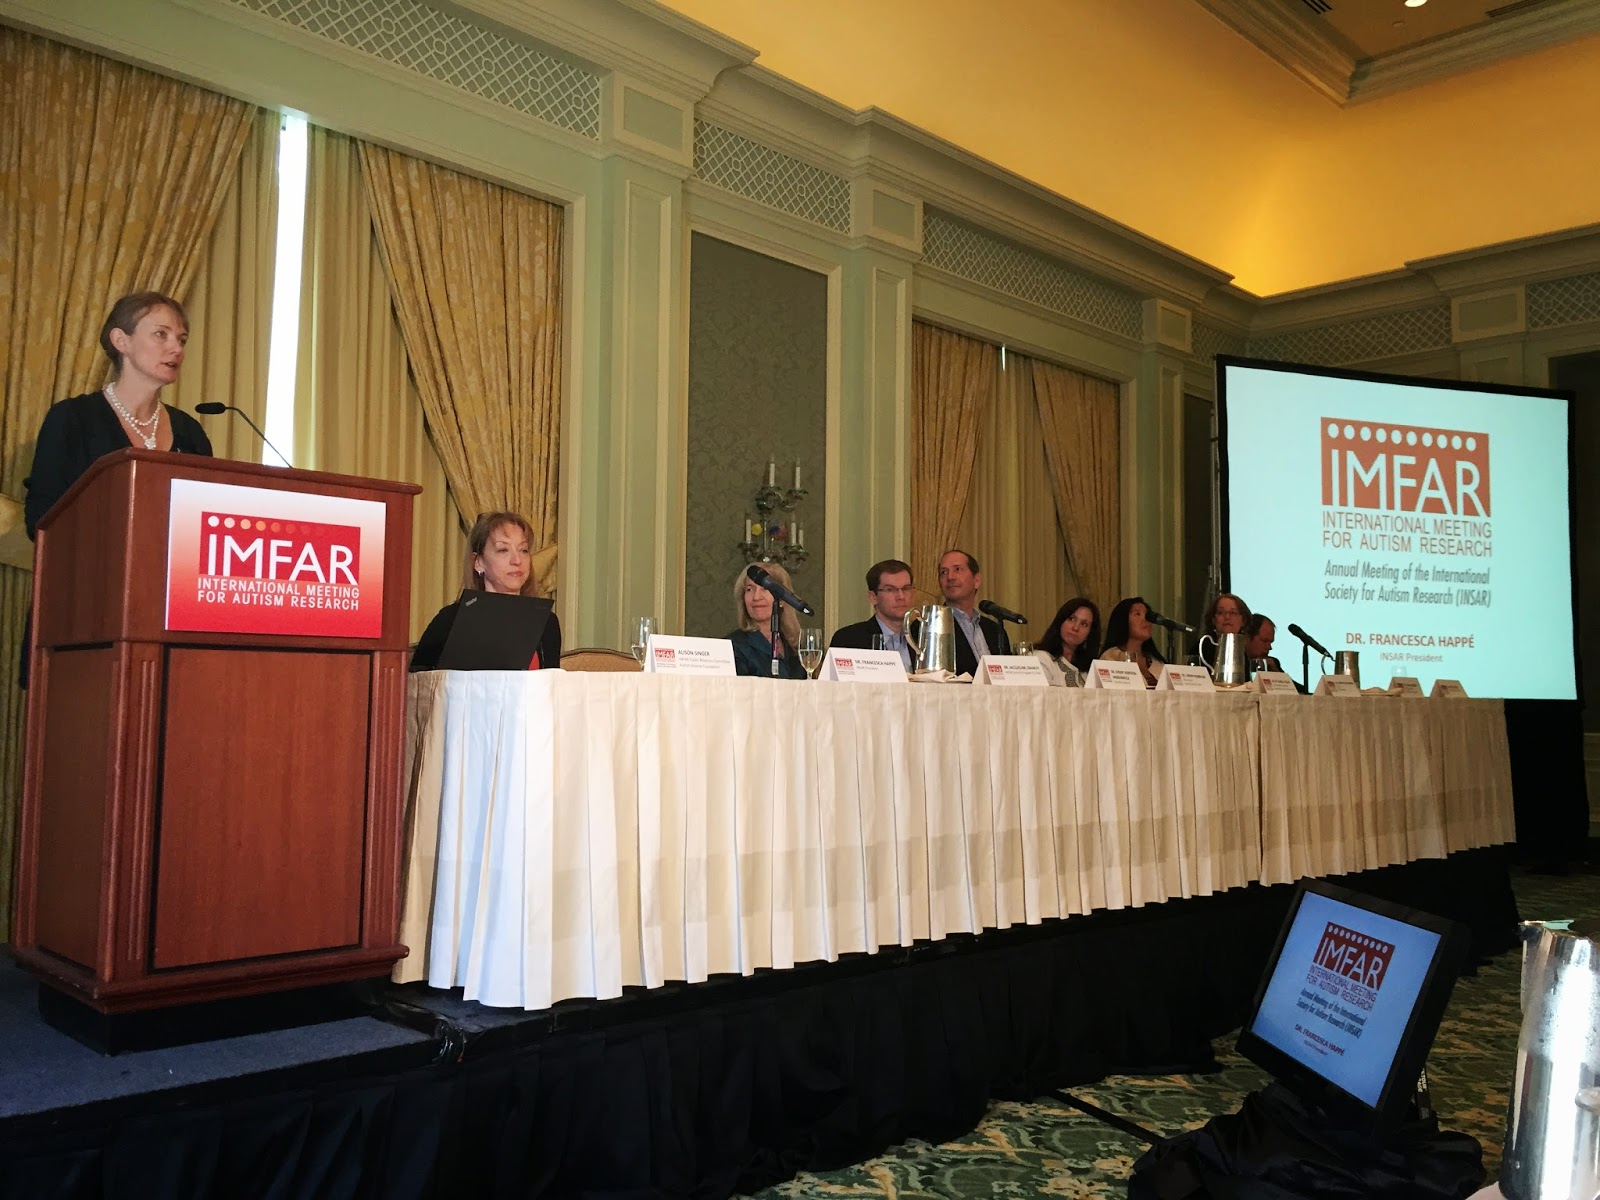 John Elder Robison At Imfar On Autism >> Whither Autism Research Observations From Imfar 2015